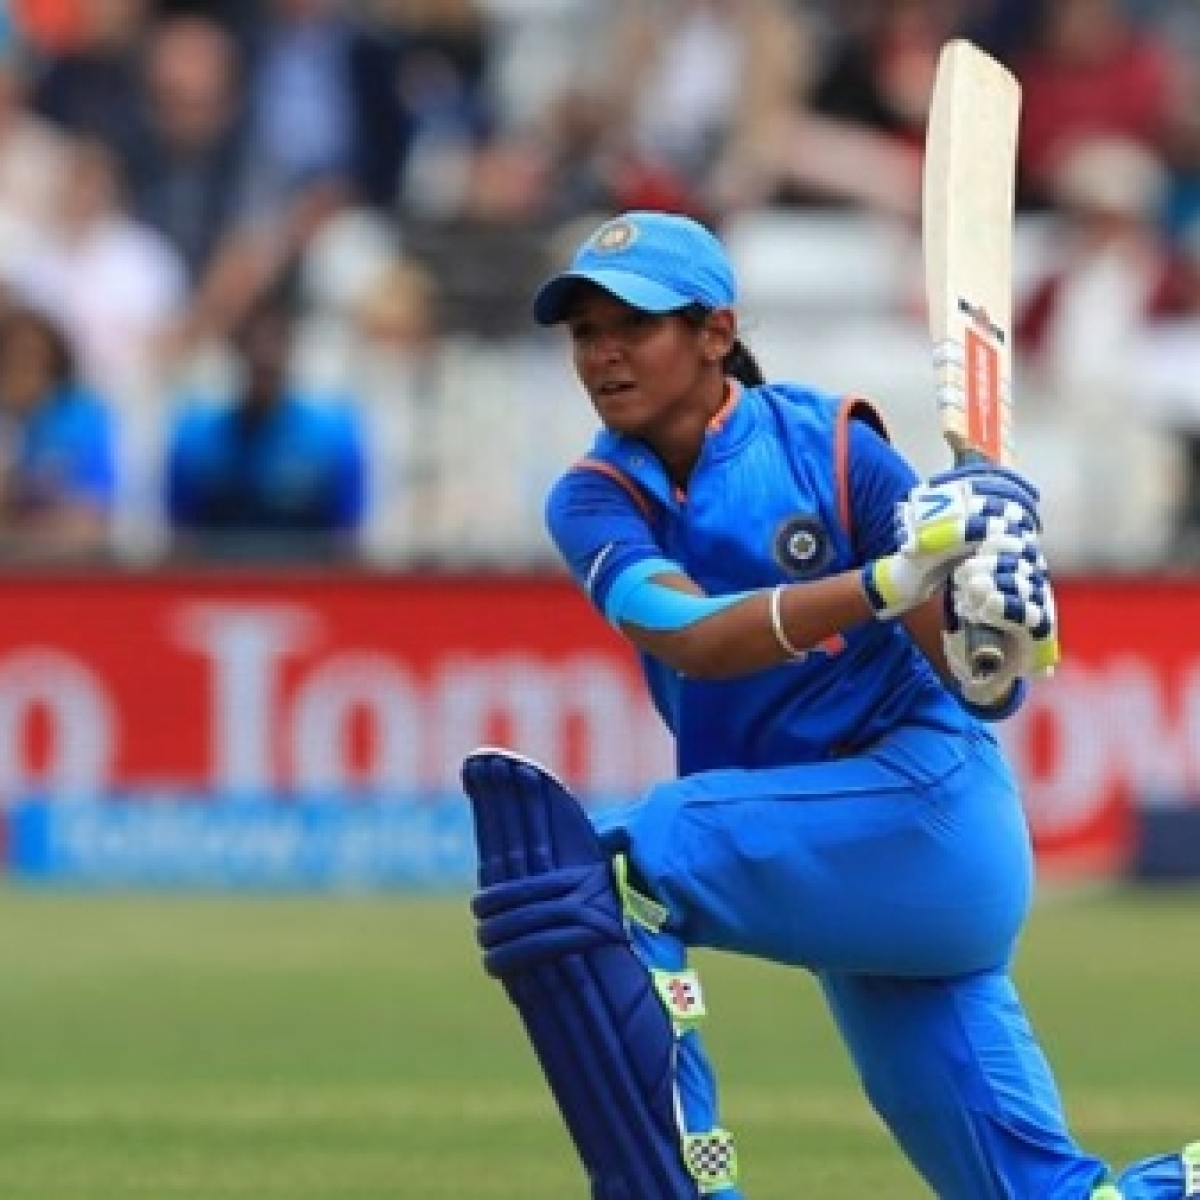 'Our side is very young and all are match-winners': Indian skipper Harmanpreet Kaur praises team ahead of T20I Women's World Cup